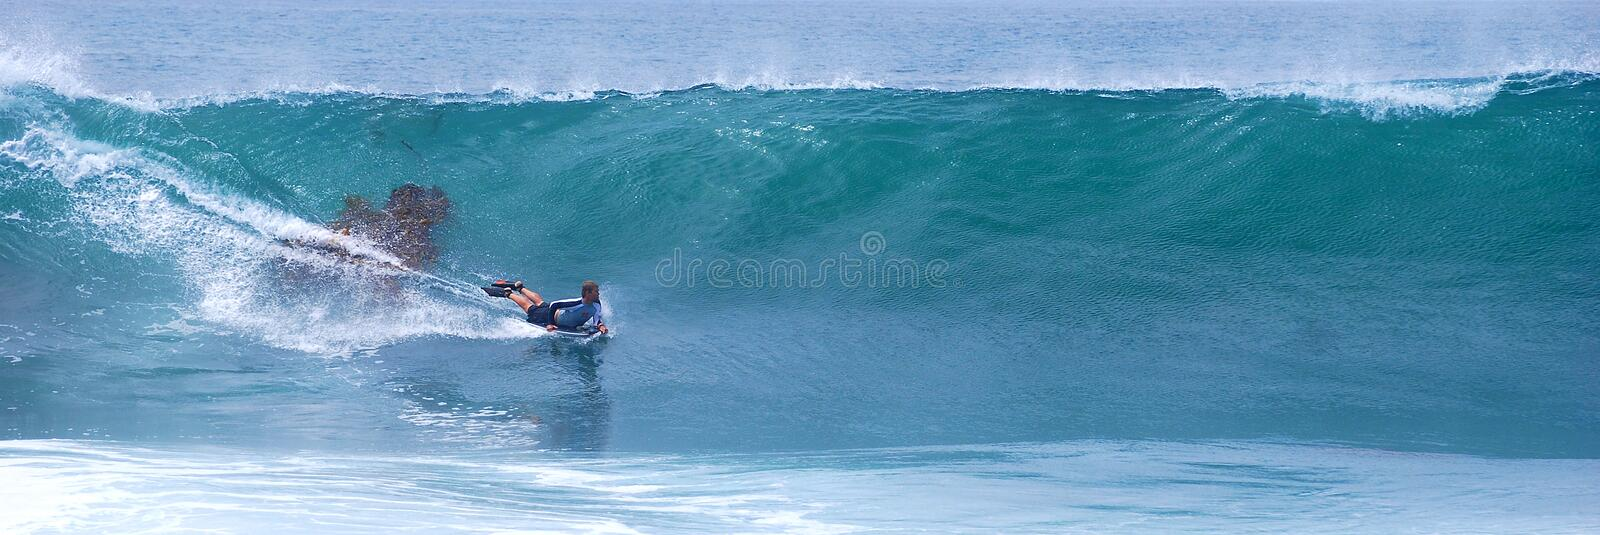 Bodyboarder riding a wave at Laguna Beach, CA. stock images